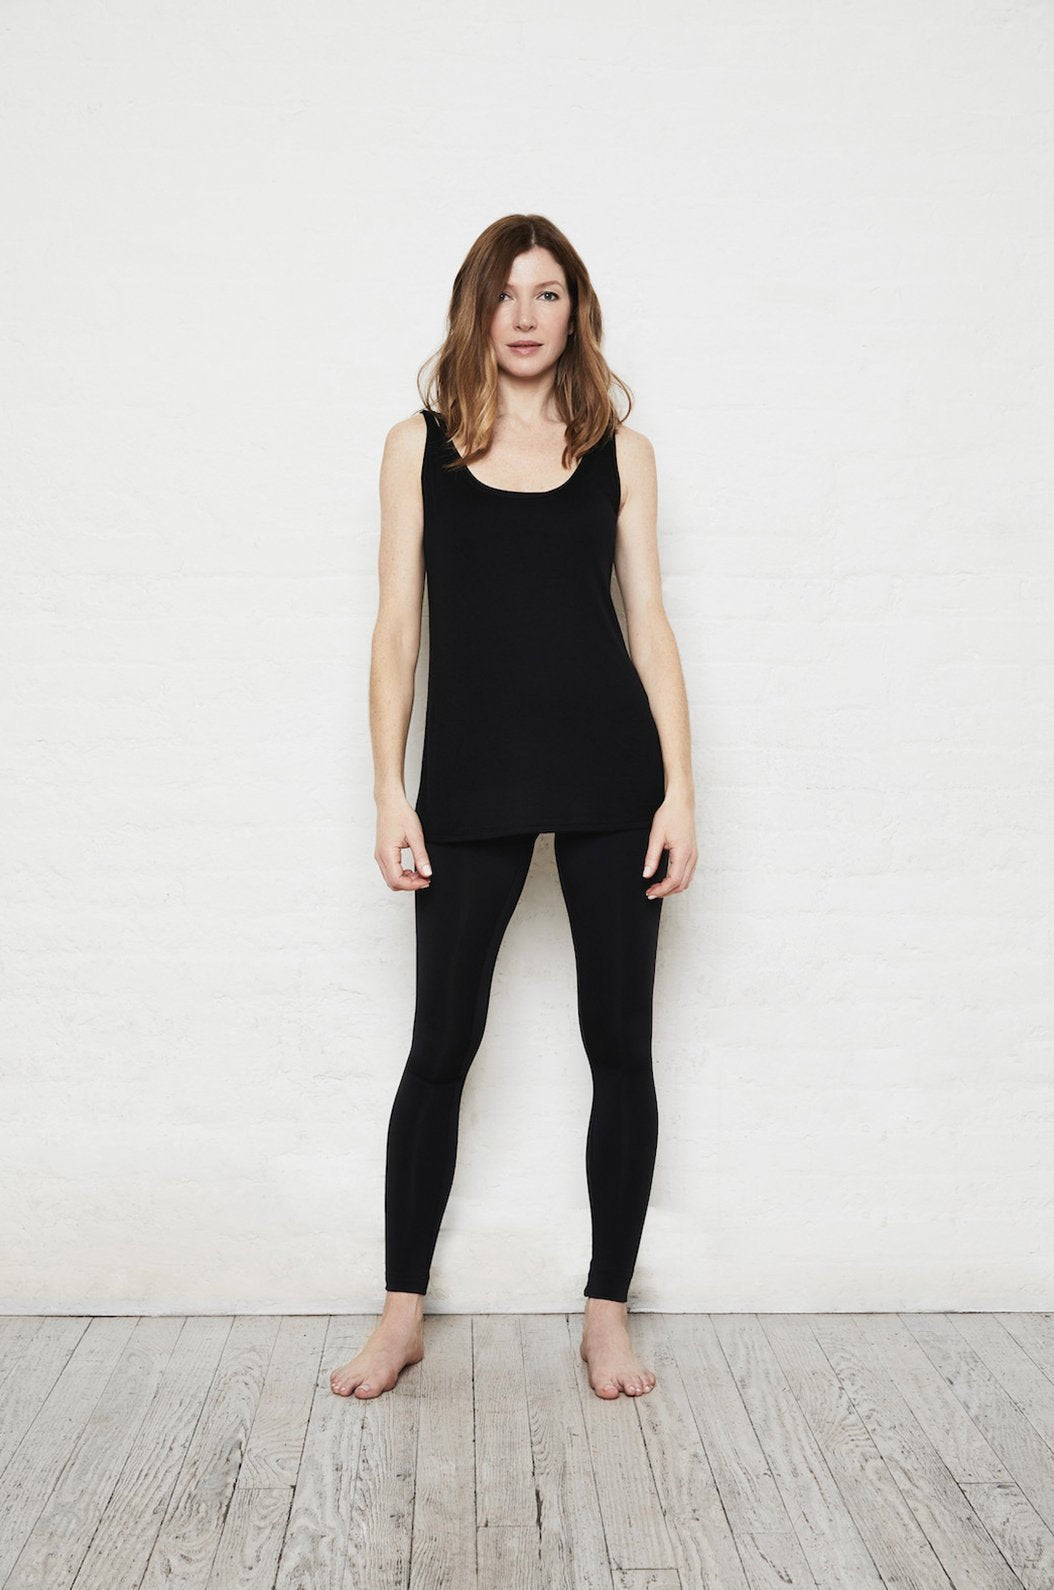 ROYL NYC | Luxury loungewear - LIGHTWEIGHT CASHMERE BLEND ELONGATED CAMISOLE TANK | ROYL